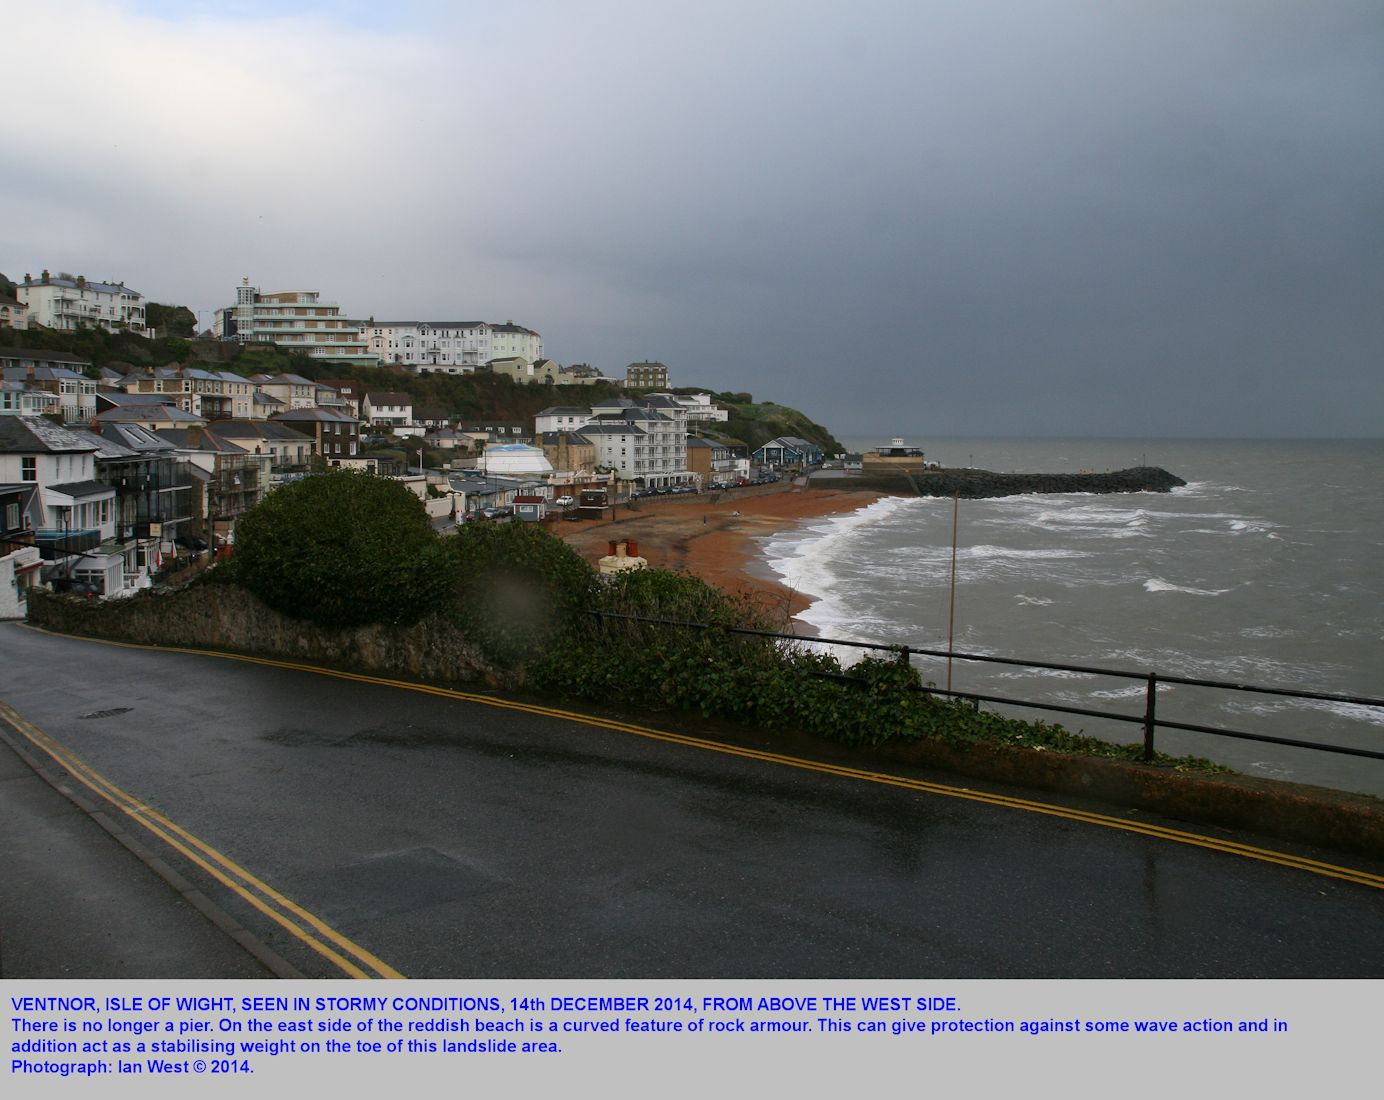 Ventnor, Isle of Wight, seen in stormy conditions from above the west side, 14th December 2014